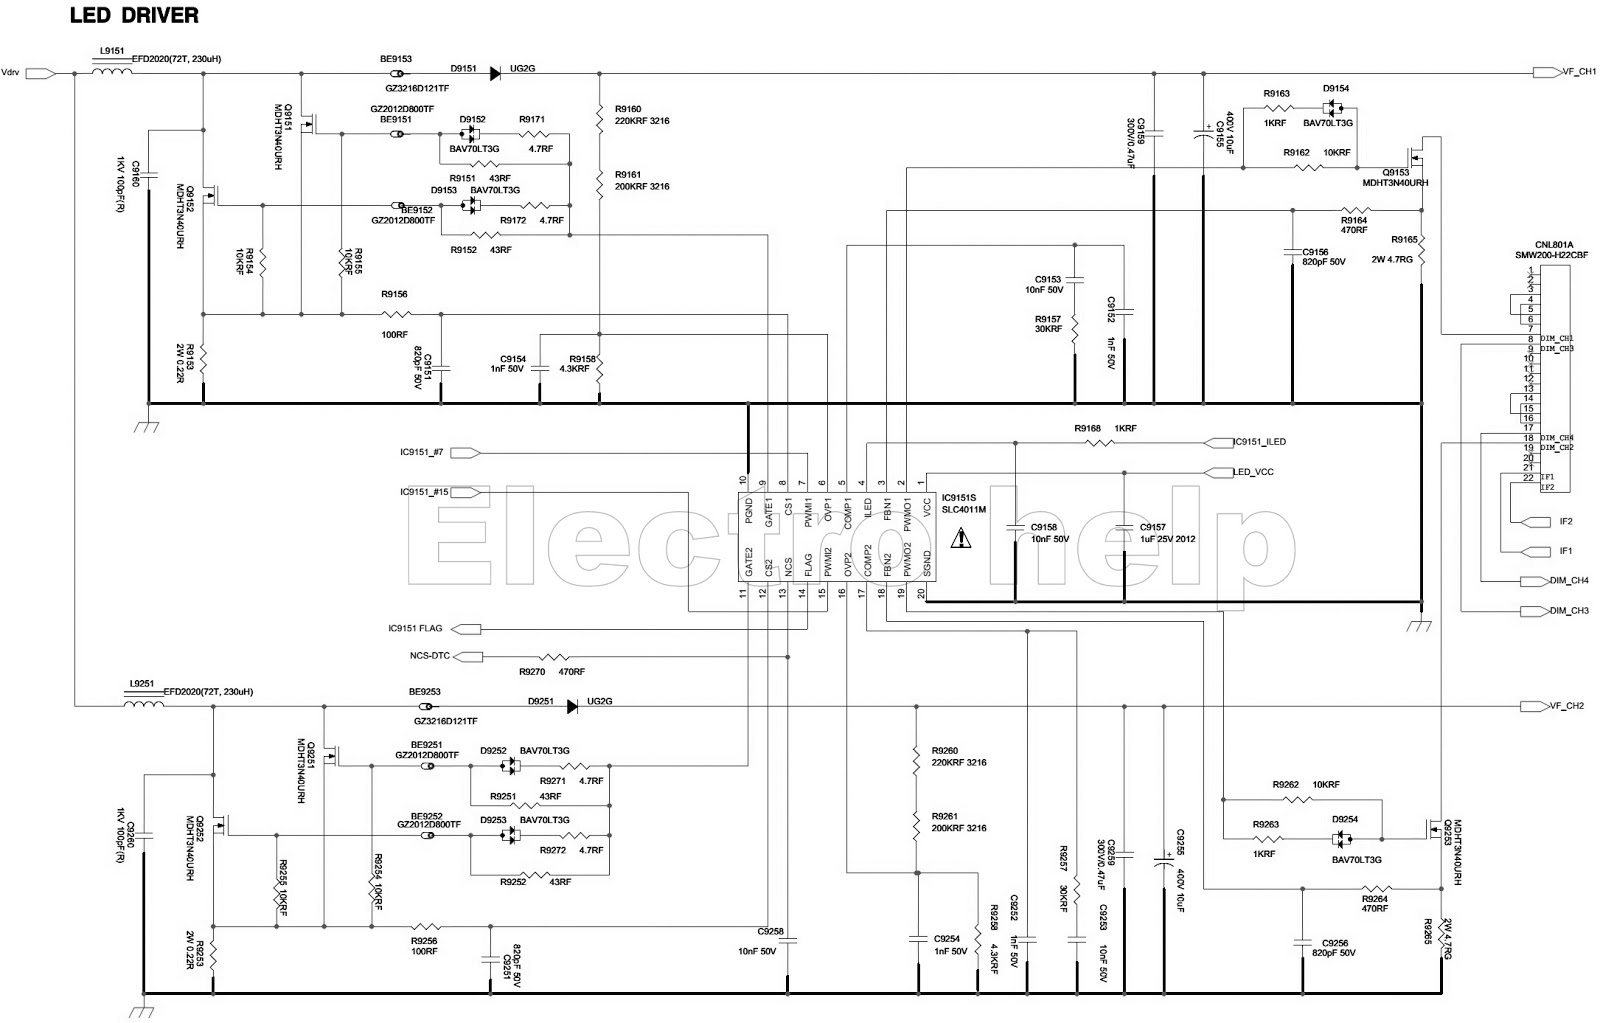 electro help: samsung bn44 00428b – led lcd tv smps circuit diagram - with back-light led driver led circuit diagram samsung